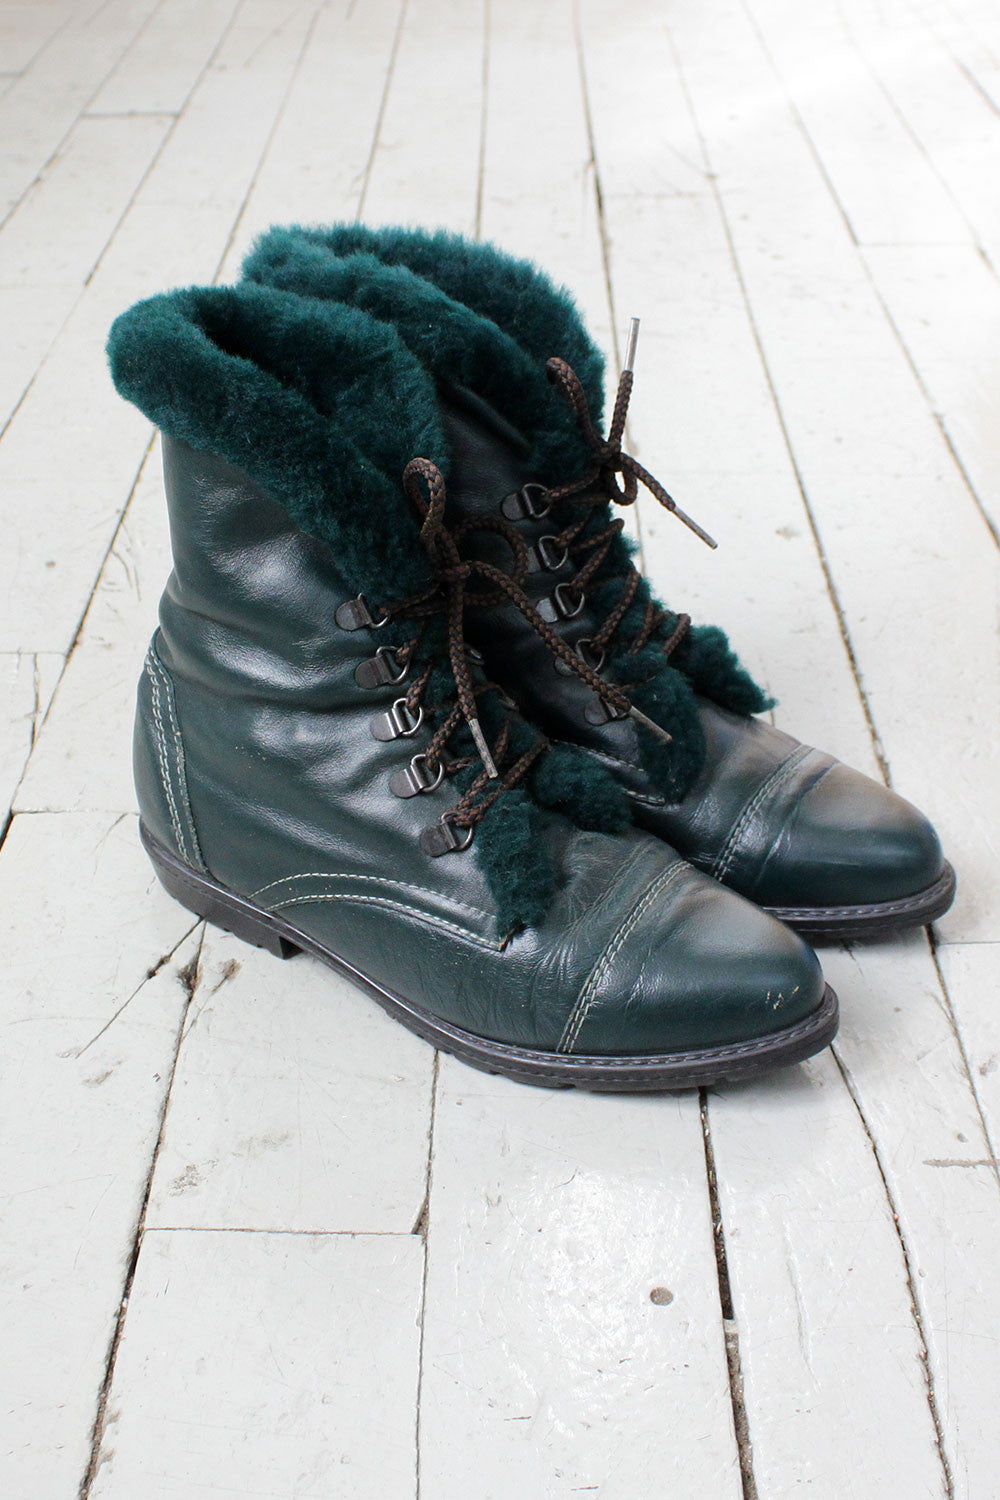 Canadian Sherpa Boots 8 1/2